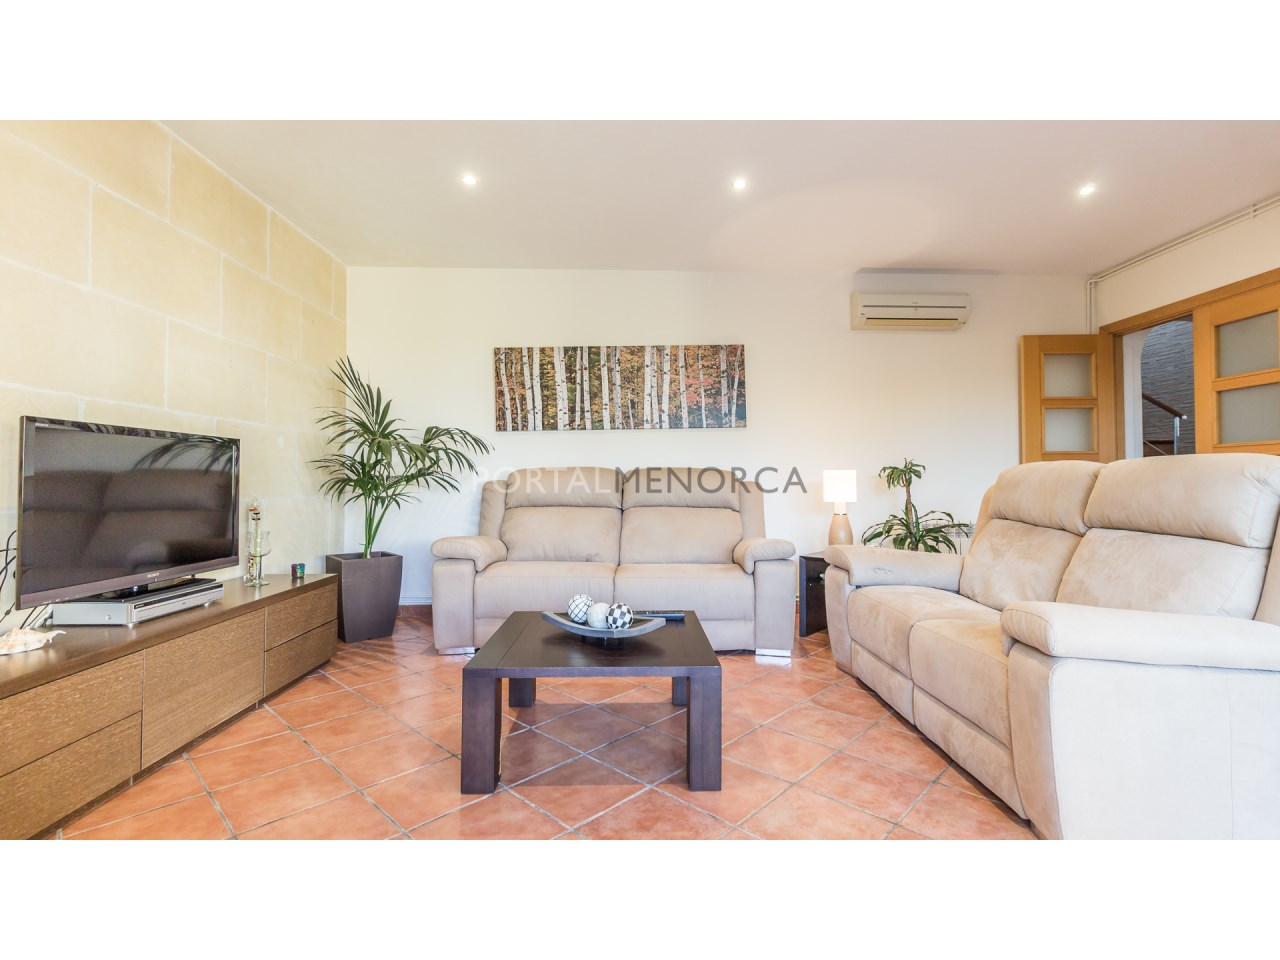 villa for sale in Trebaluger Menorca (8 de 24)